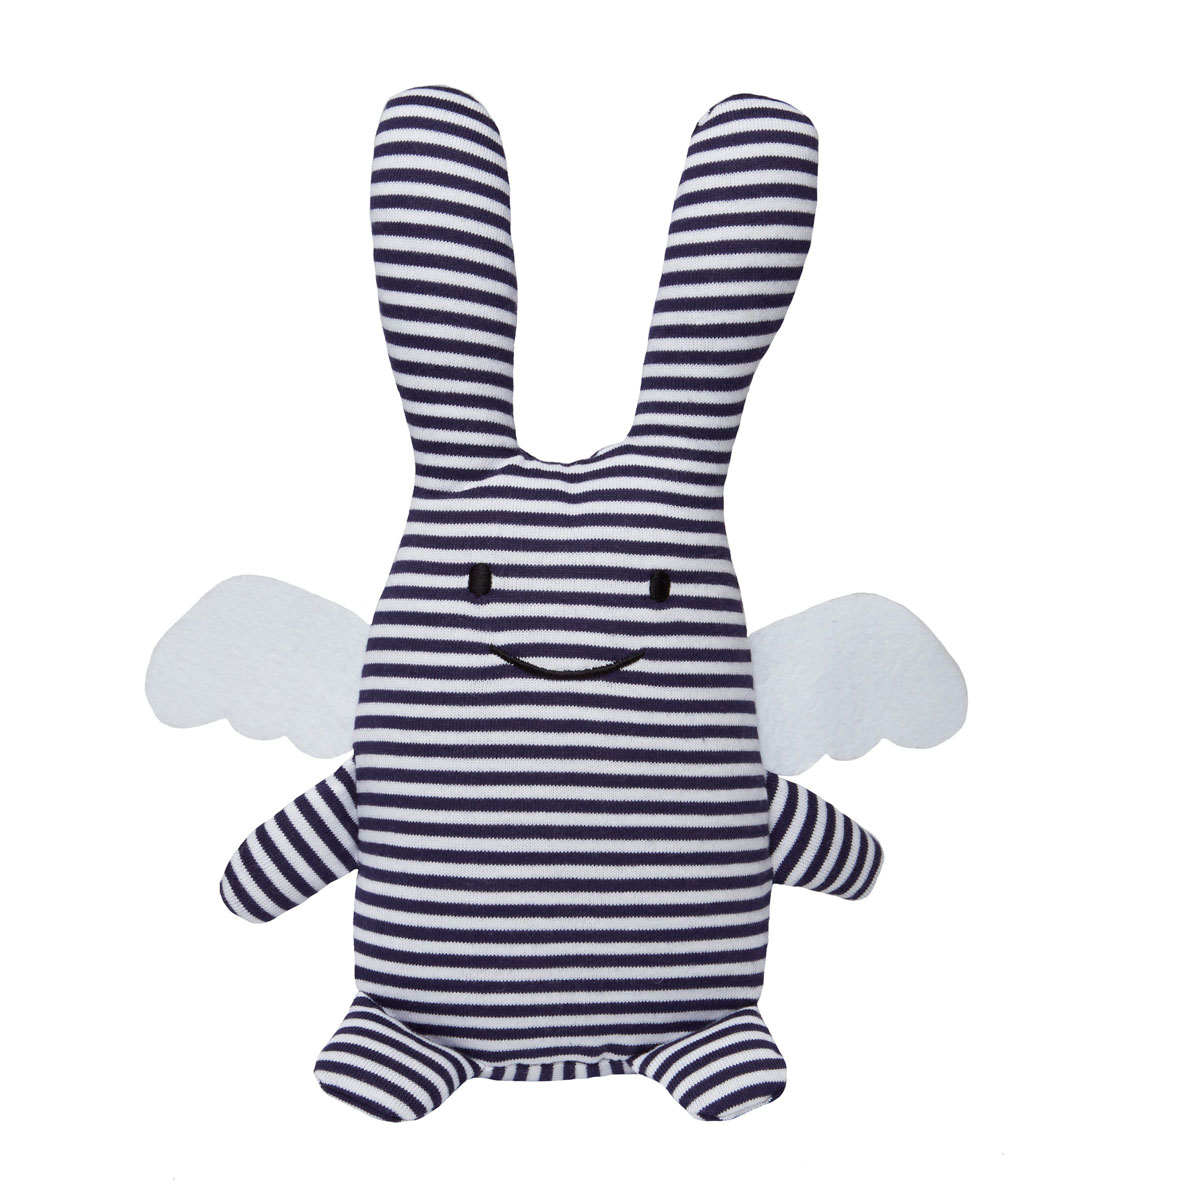 Peluche Ange Lapin Musical Marinière - 24 cm Ange Lapin Musical Marinière - 24 cm